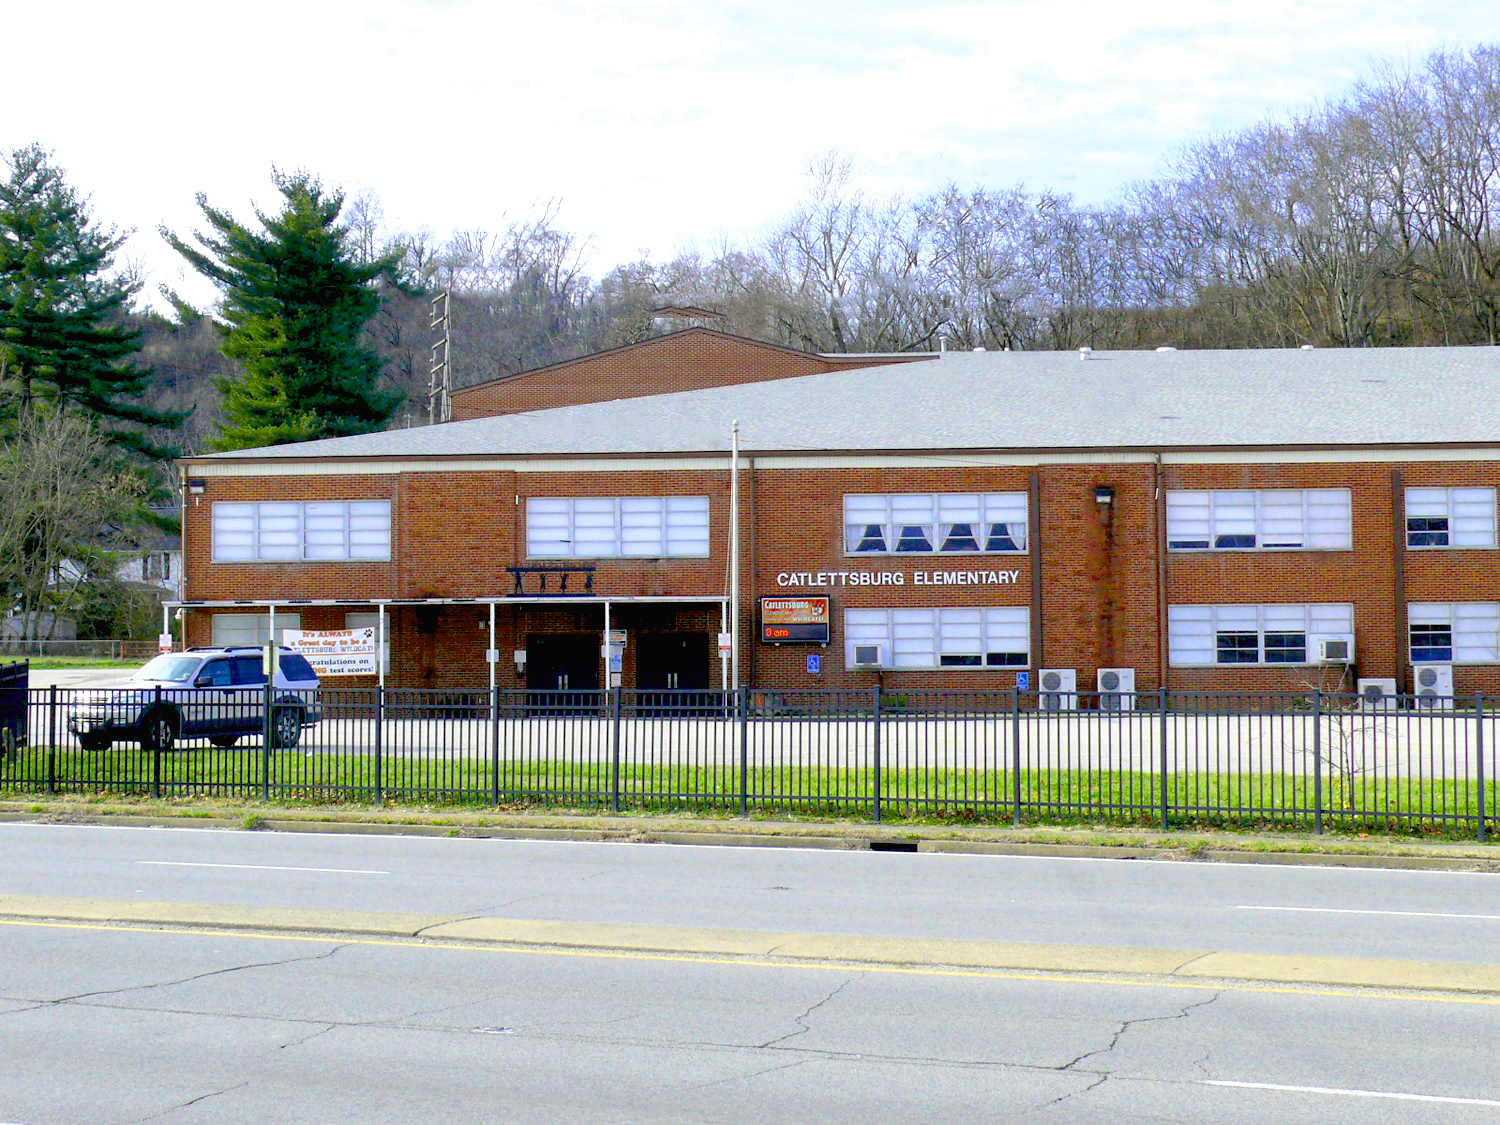 External picture of Catlettsburg Elementary.